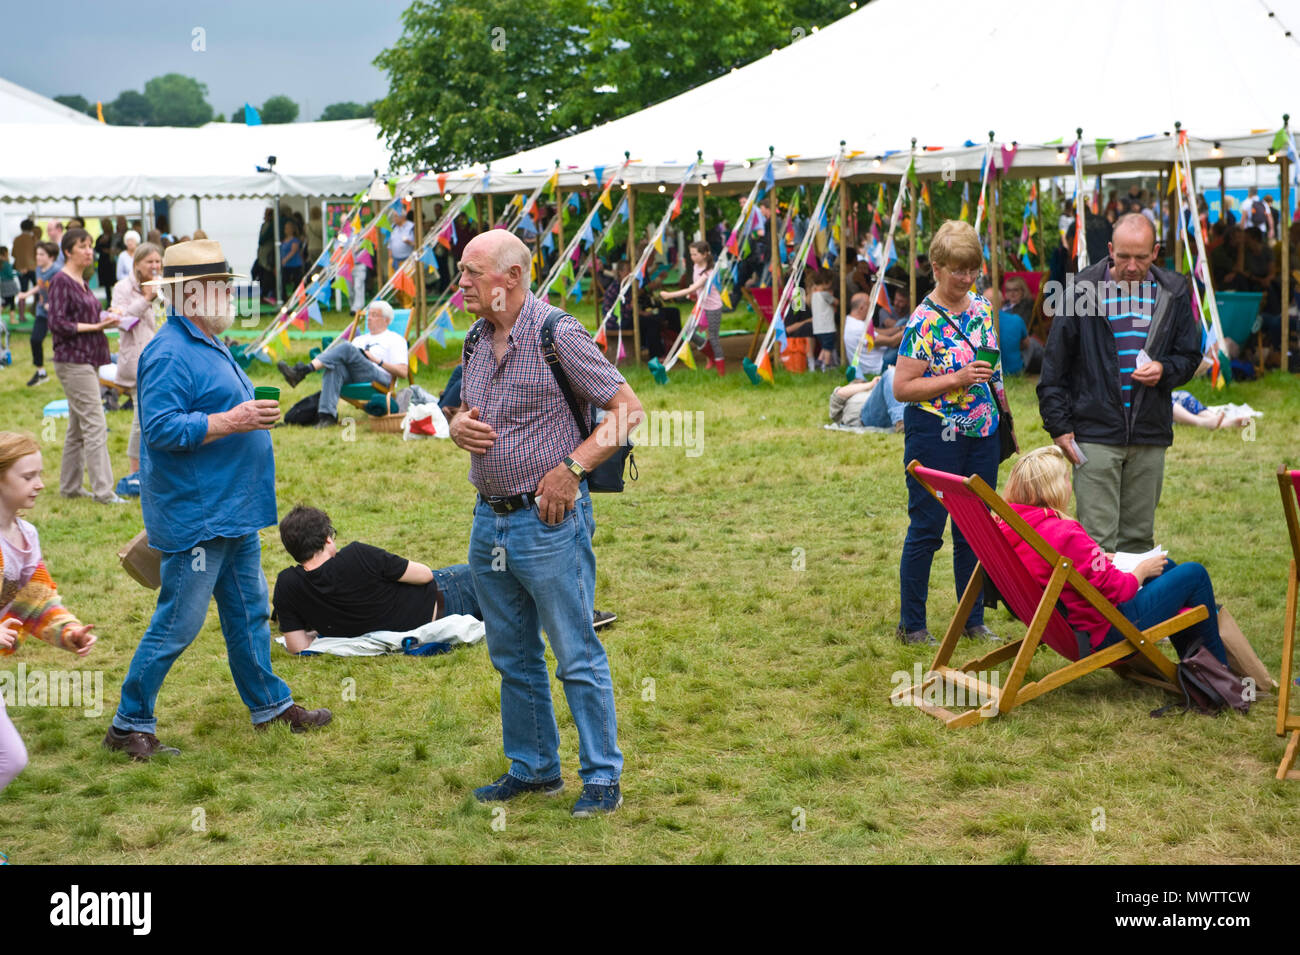 Visitors relaxing on the lawn in the garden area at Hay Festival 2018 Hay-on-Wye Powys Wales UK - Stock Image